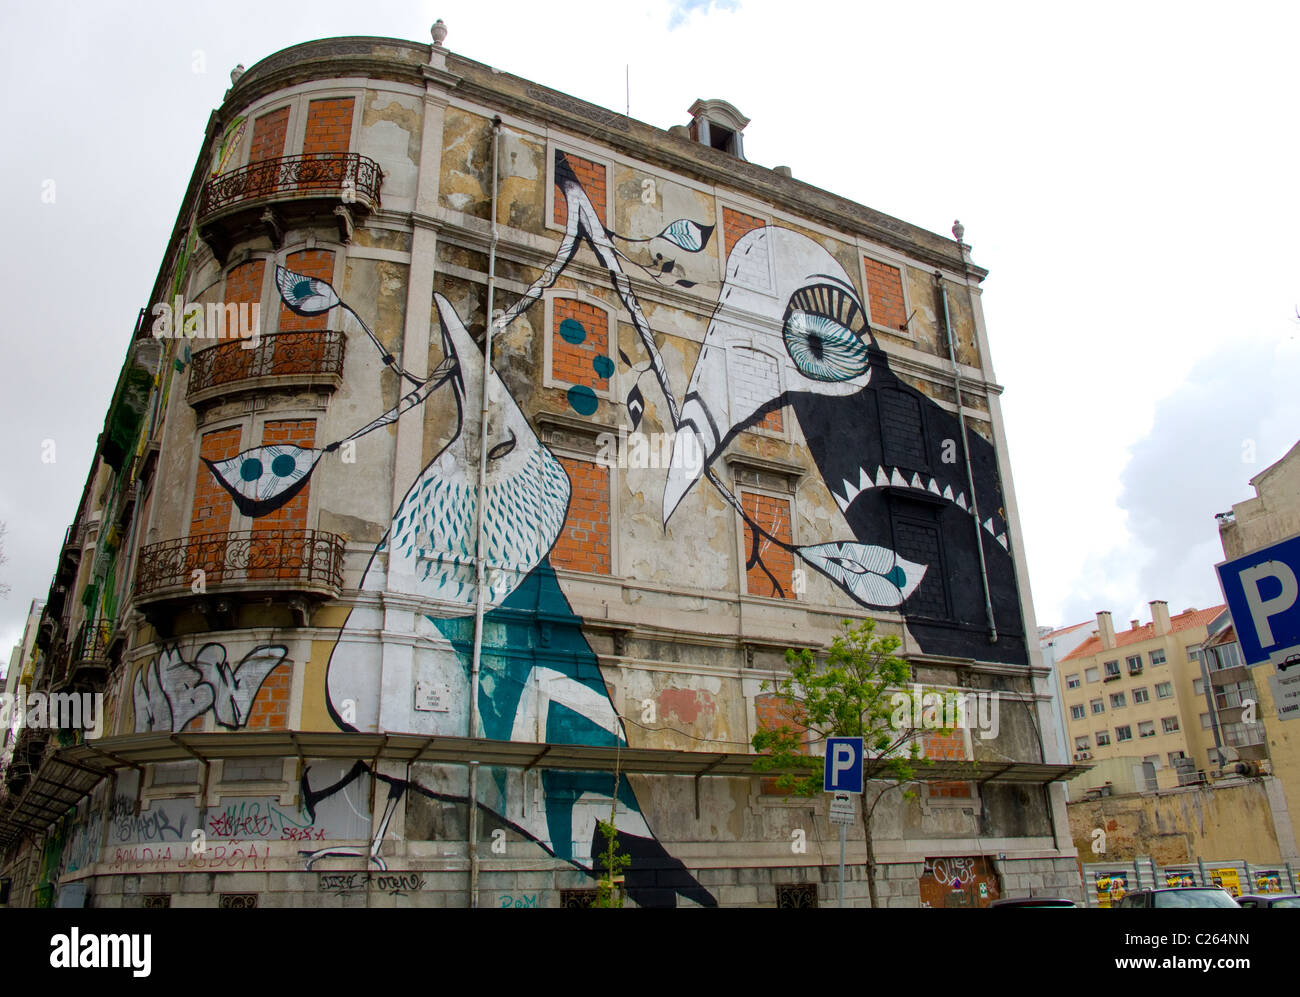 Street art and graffiti on unused buildings in the Portuguese capitol of Lisbon - Stock Image